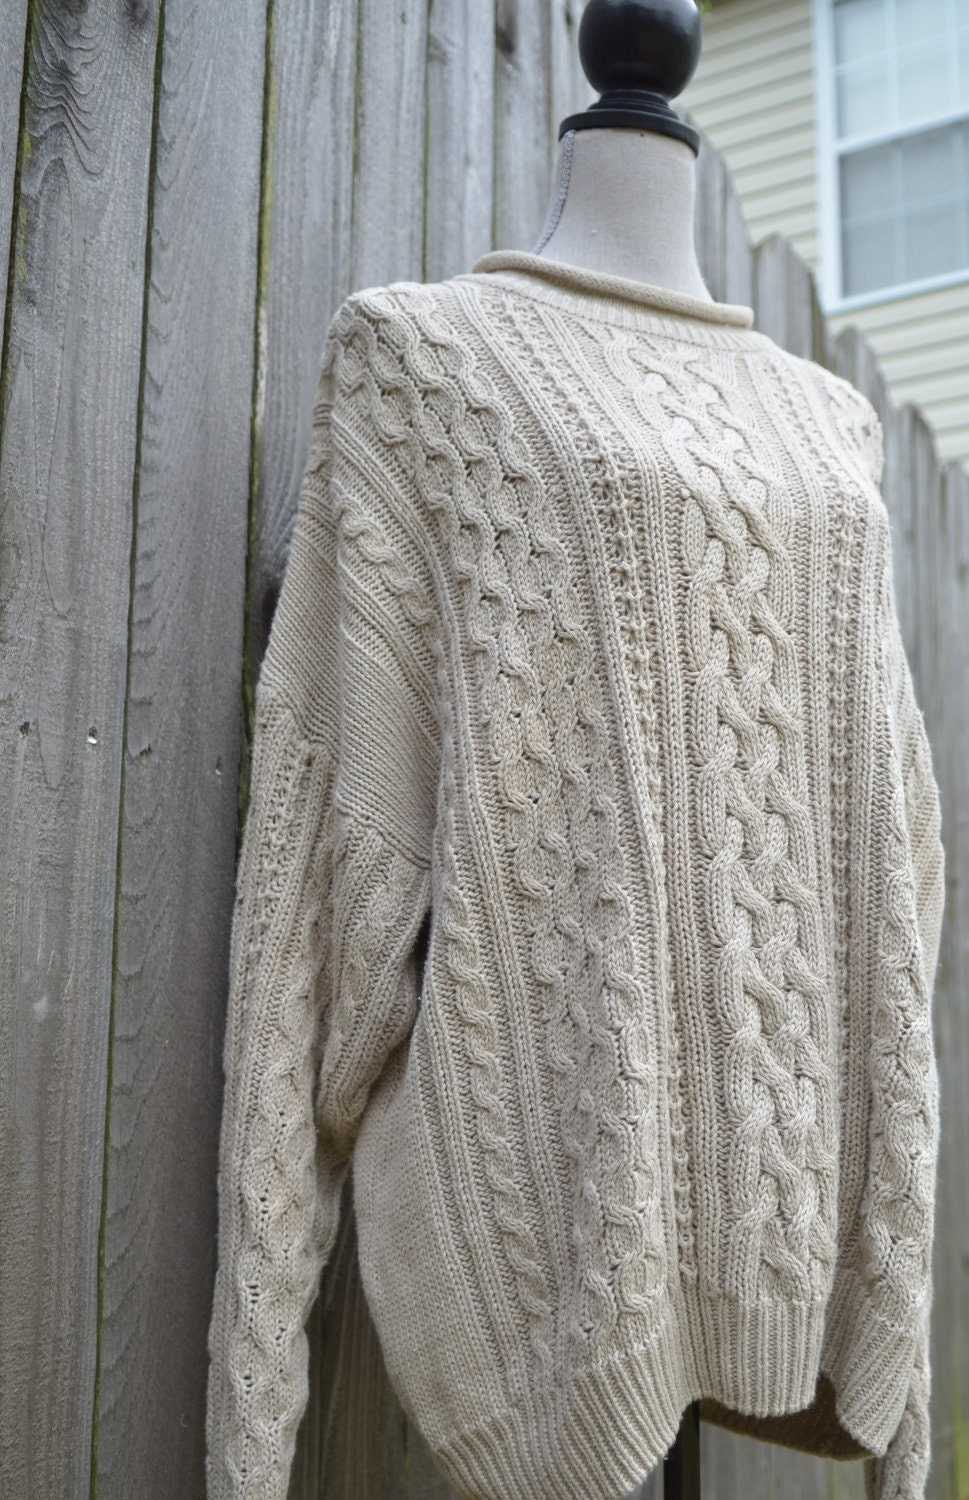 Christopher and Banks all over cable knit sweater in a wide red and cream stripe. Crew neck sweater with long sleeves and small shoulder pads that could easily be removed. Old Navy Cable Knit sweater sz L cream ivory mock turtleneck cozy warm pullover.